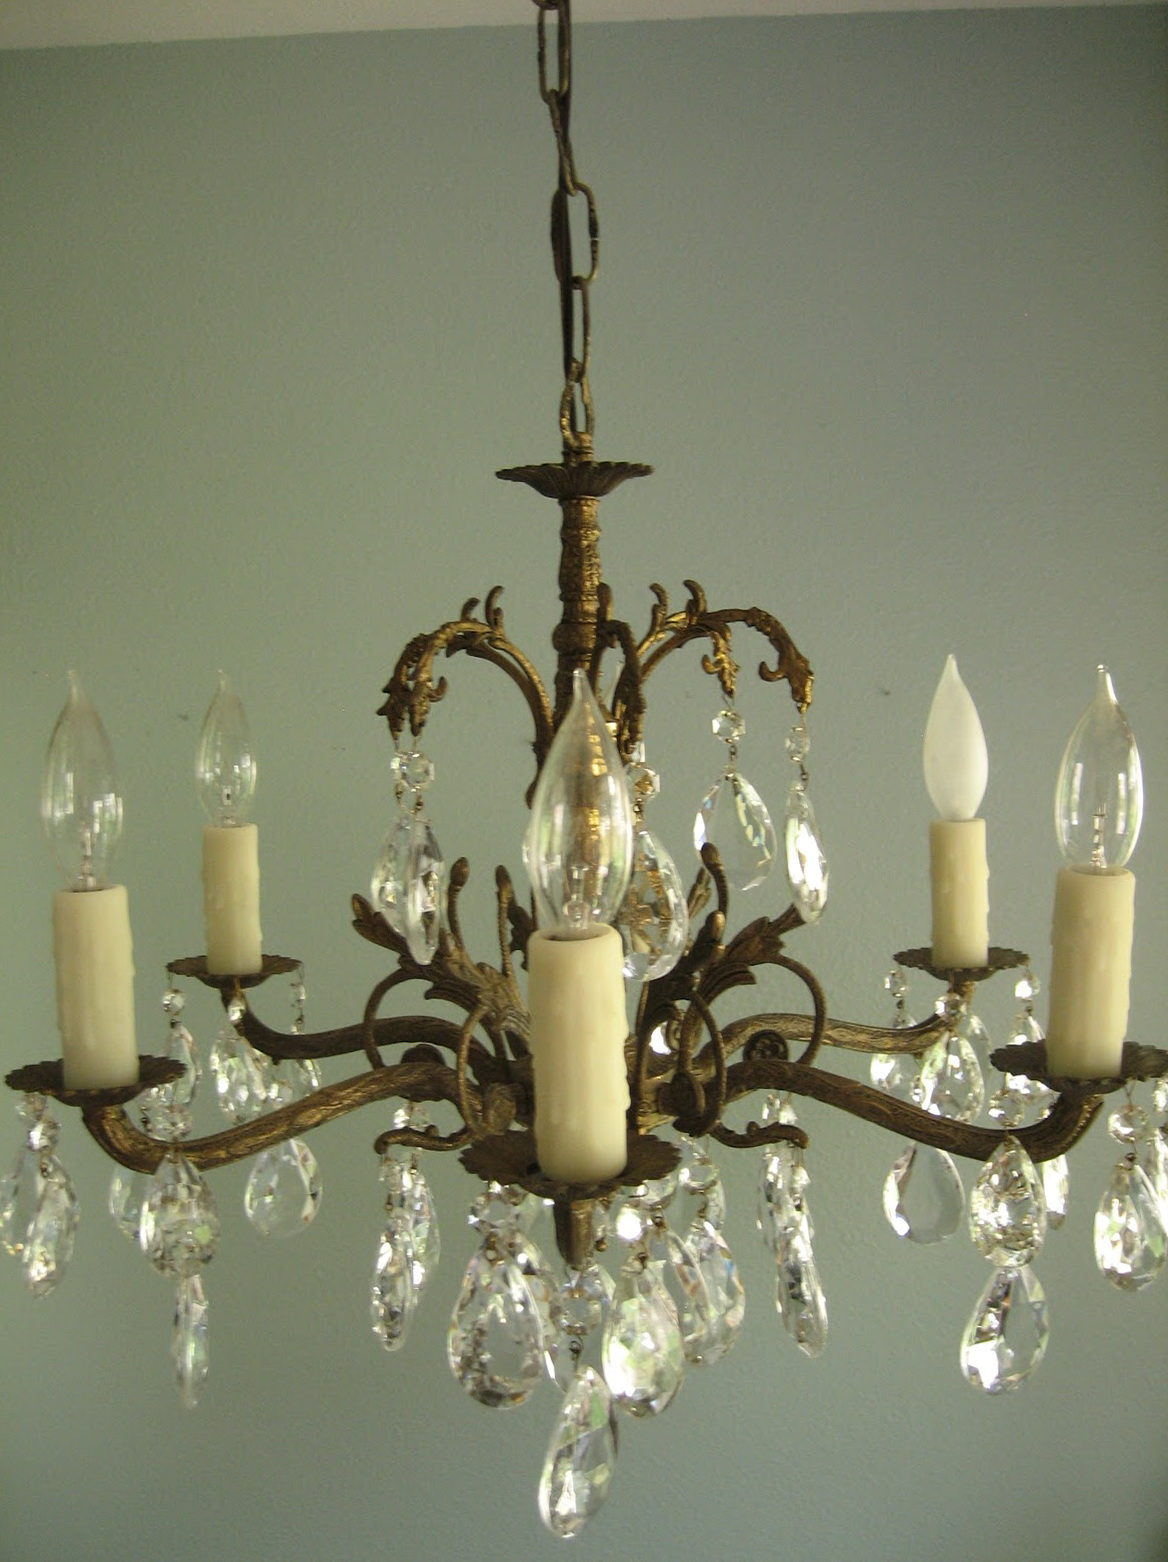 Installing A Chandelier In An Apartment